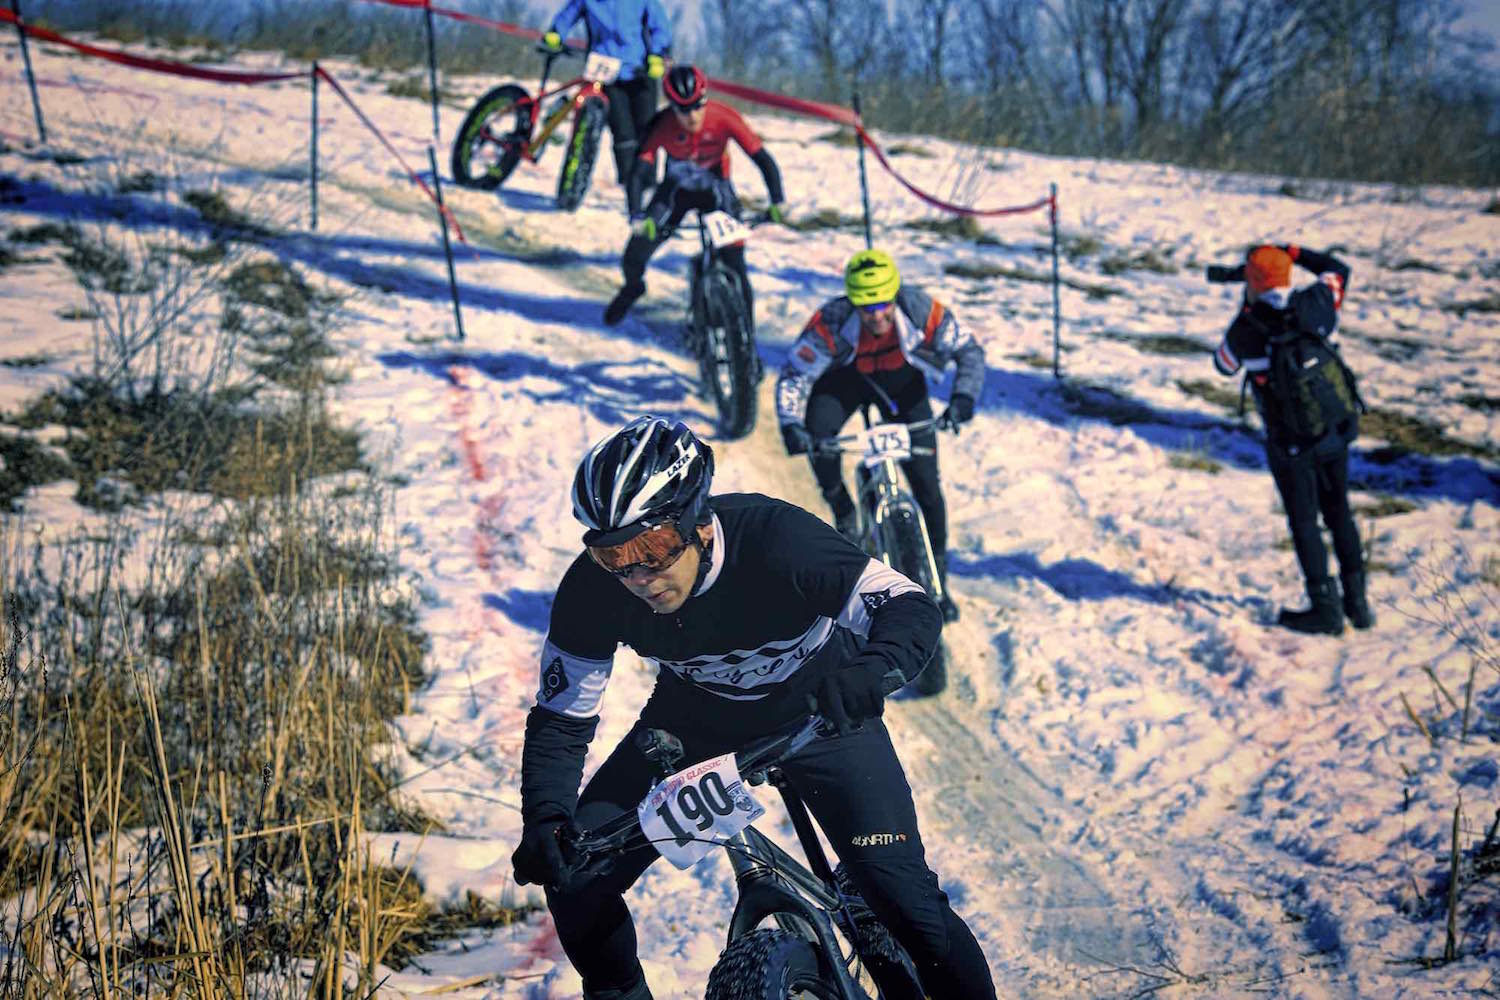 Fat bike racers tackle a slippery descent during the Fat Cupid Classic.